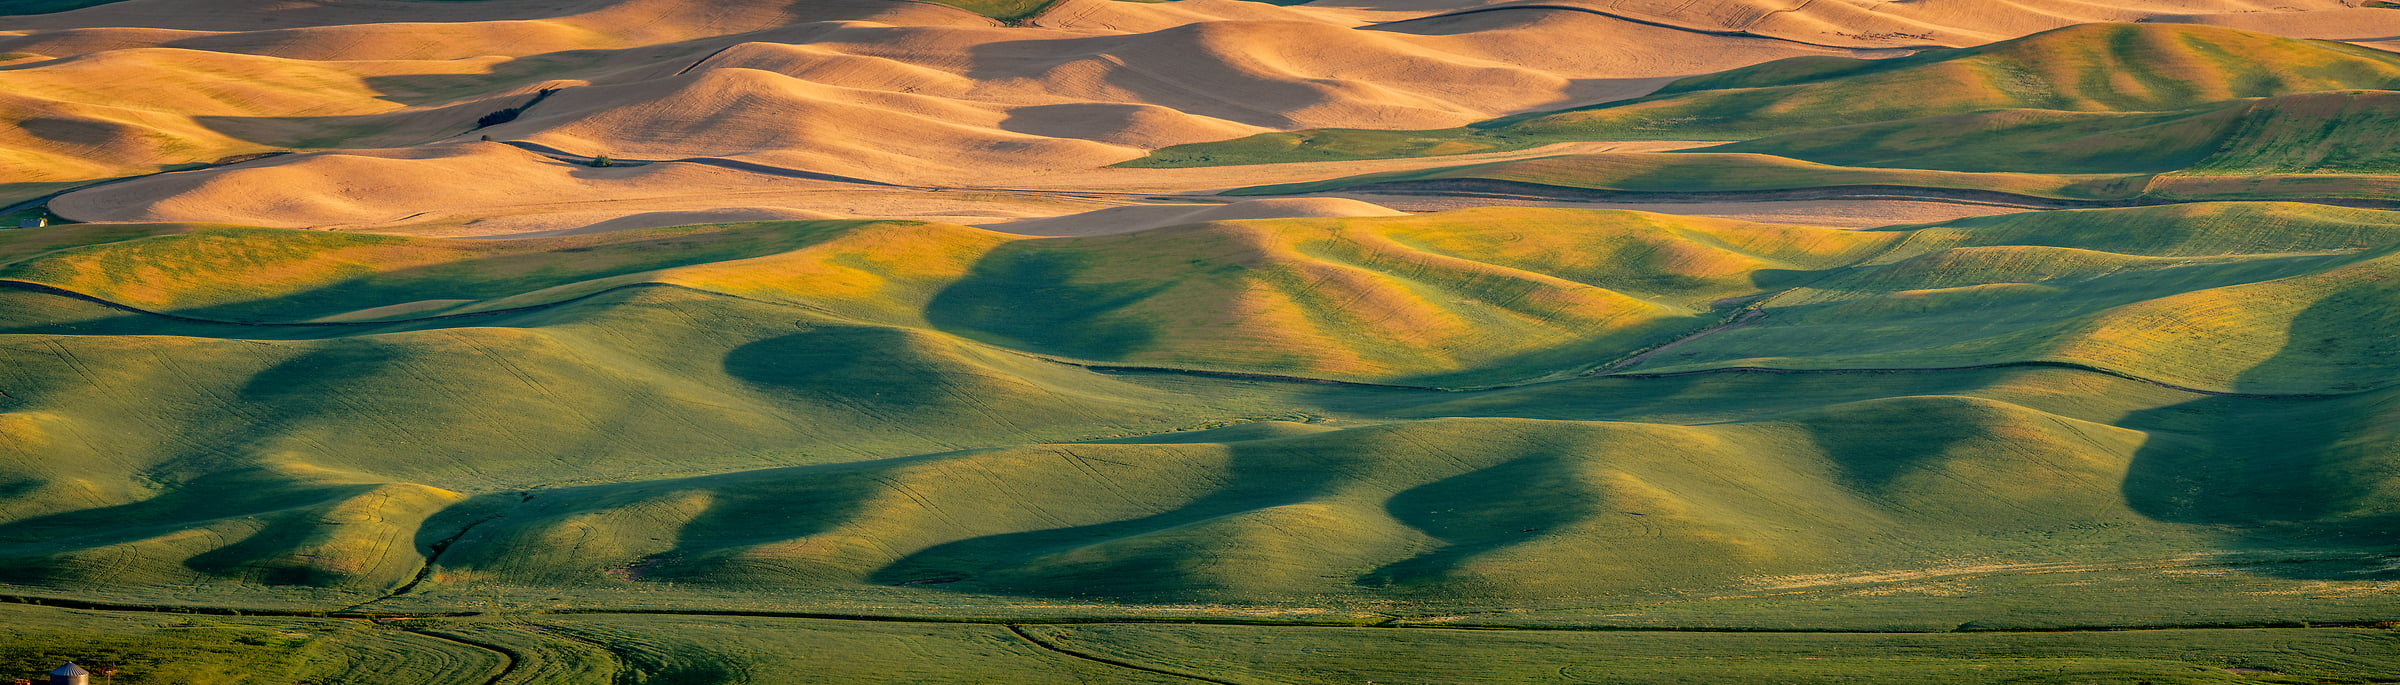 234 megapixels! A very high resolution, large-format VAST photo print of the fields and hills in Palouse, Washington; landscape photograph created by Tim Shields in Steptoe Butte, Washington